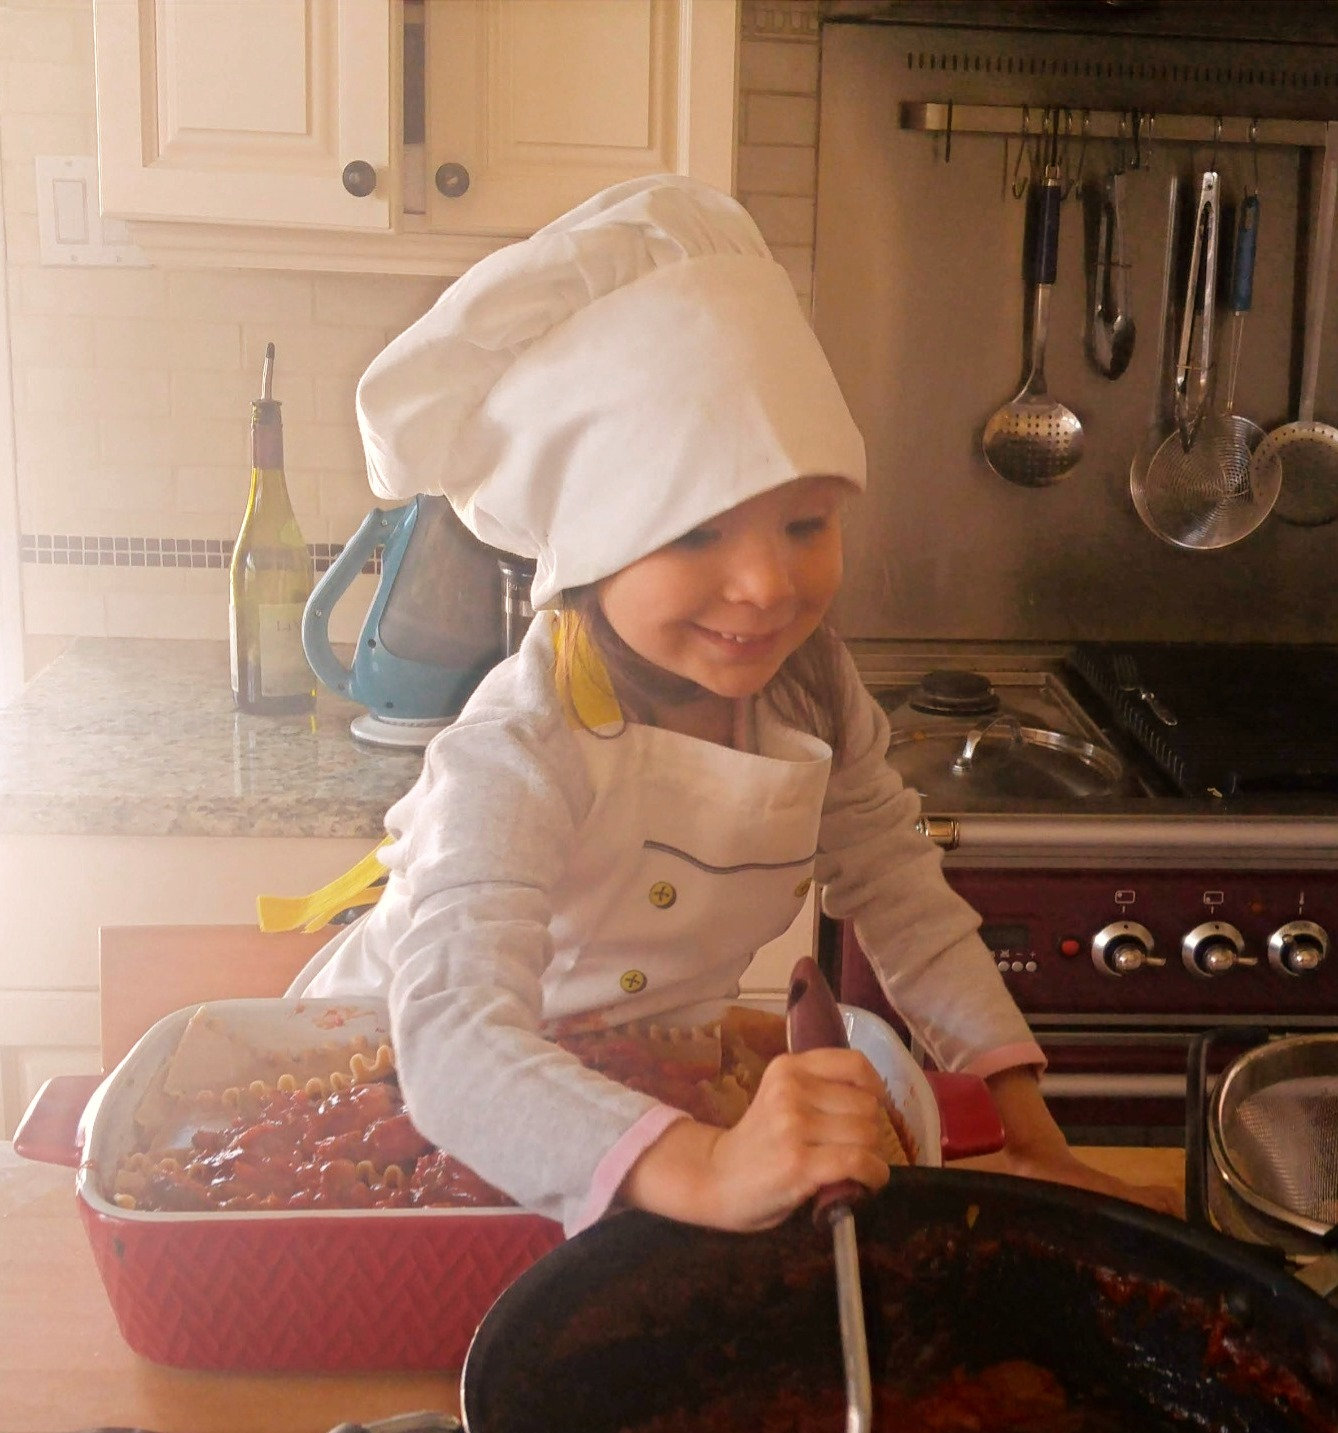 Cooking lesson for young kids